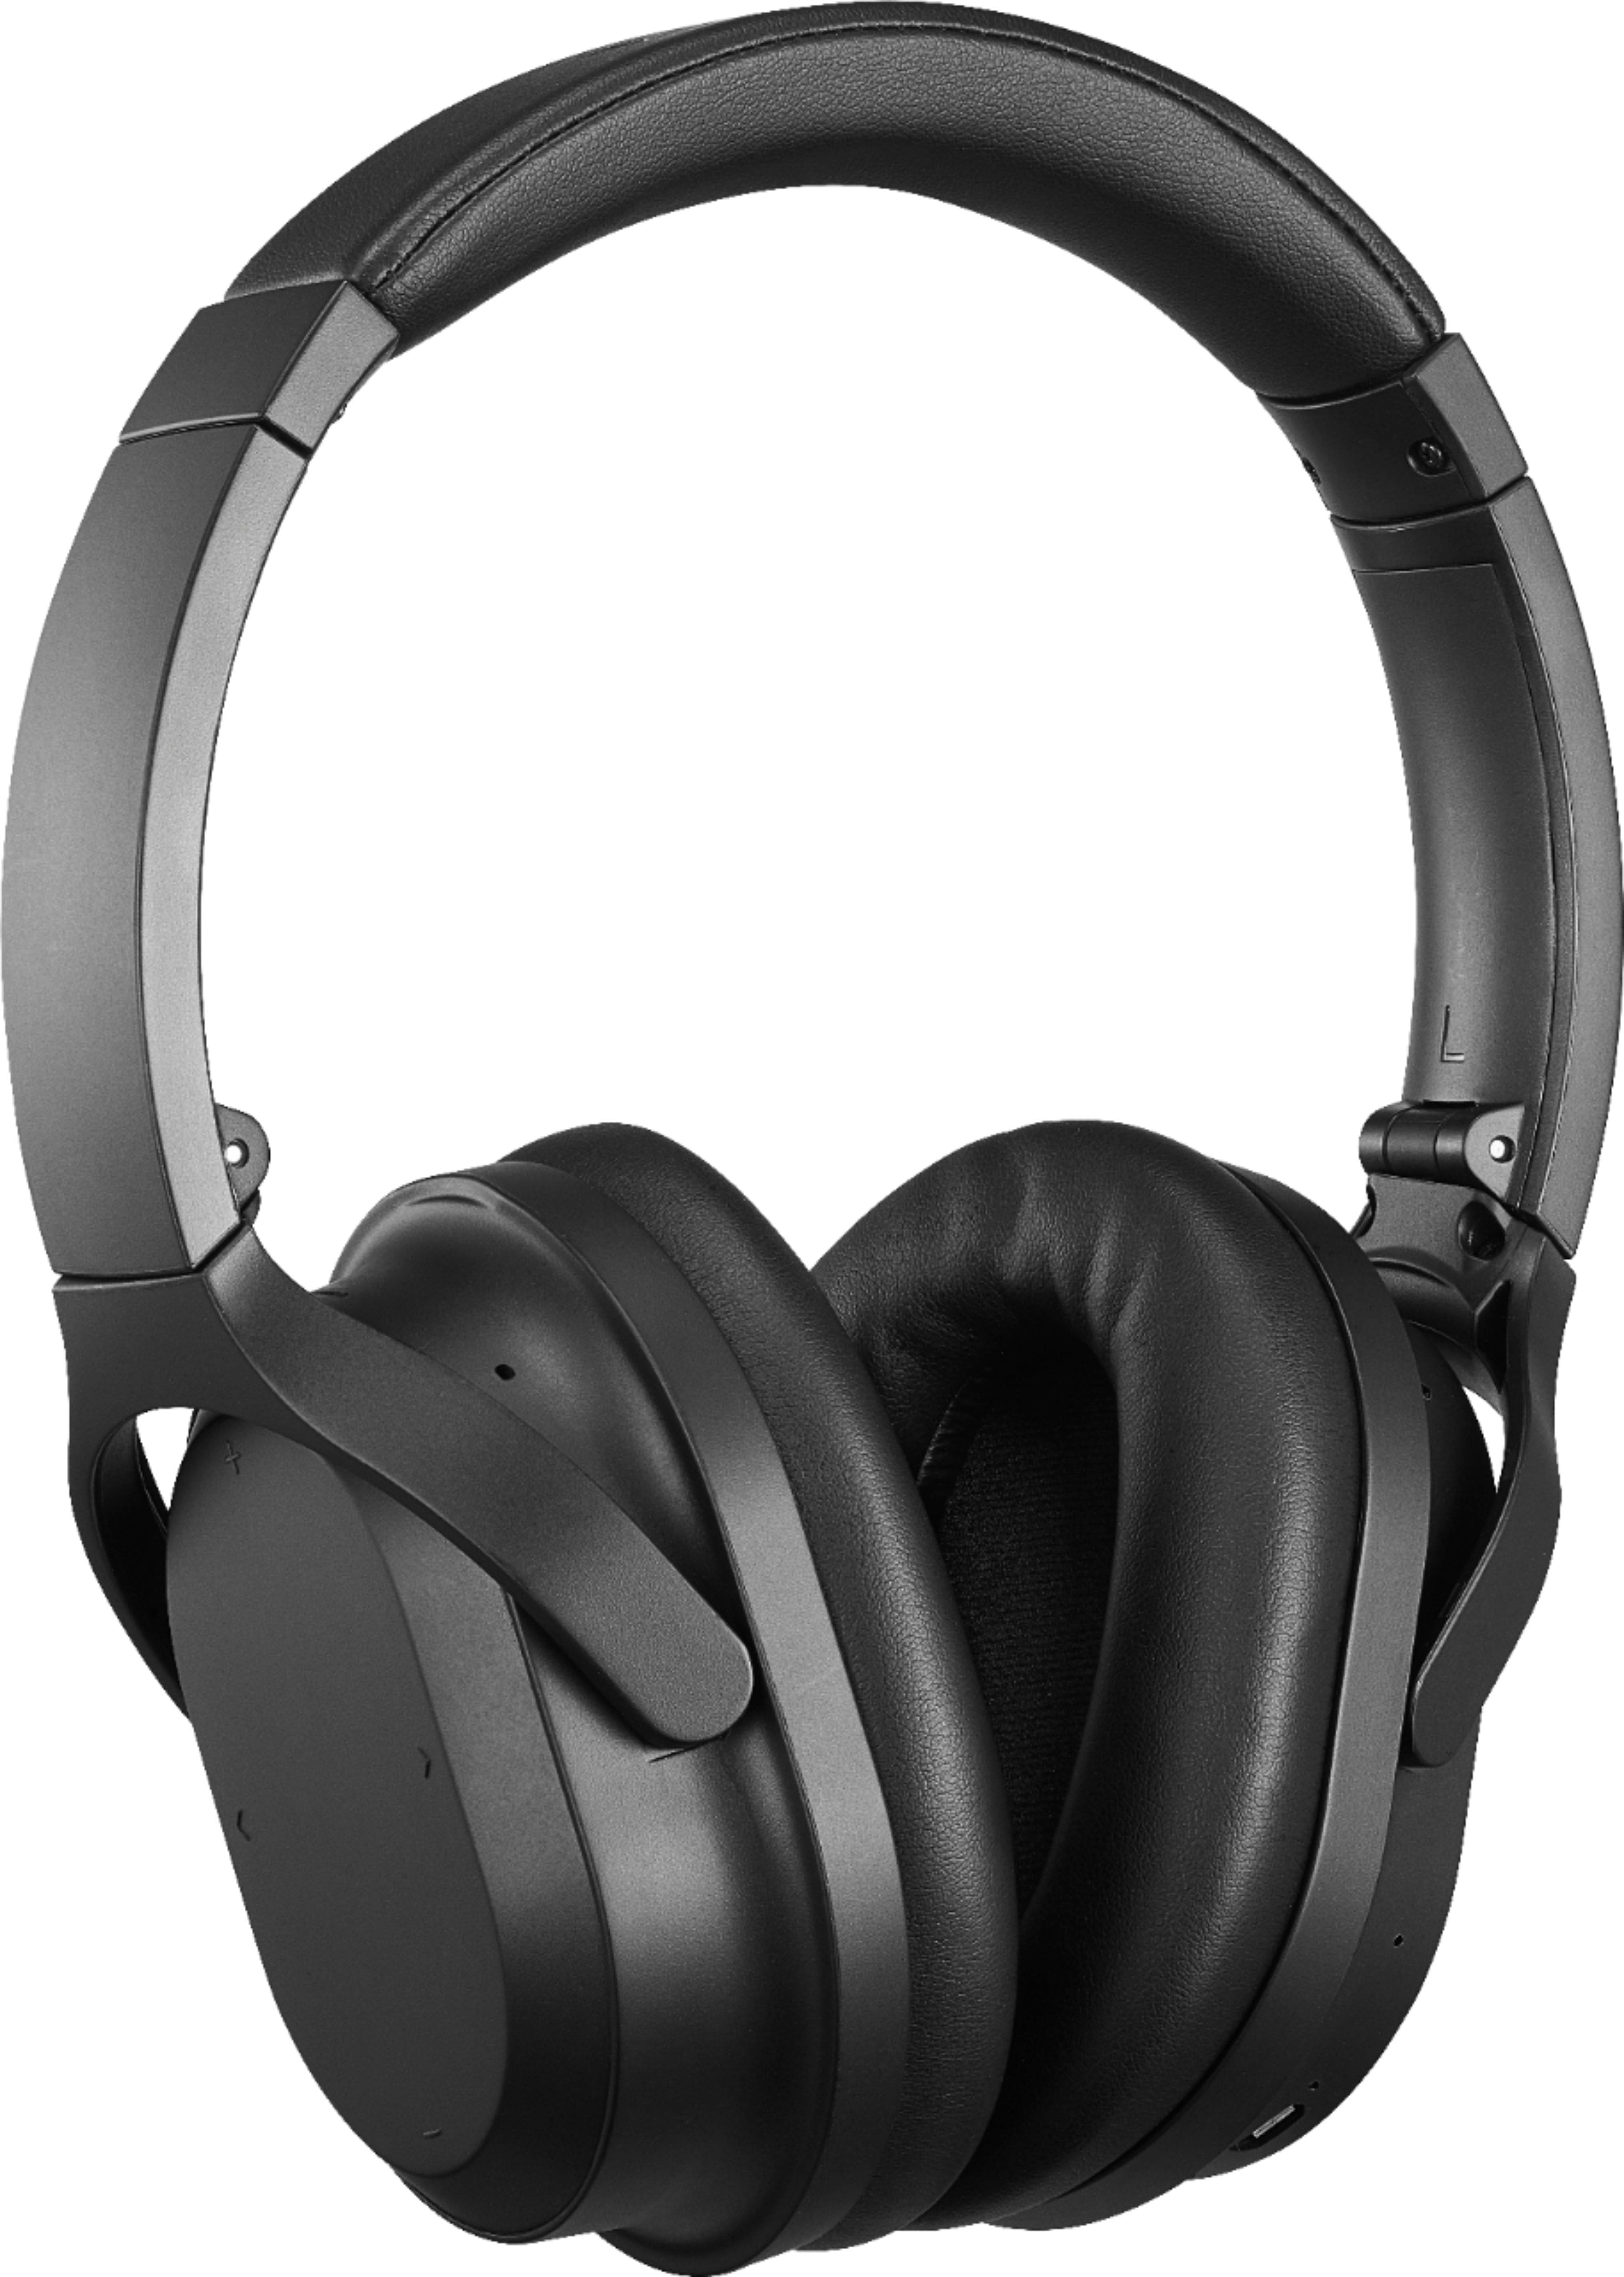 Insignia Wireless Noise Canceling Over-the-Ear Headphones $44.99